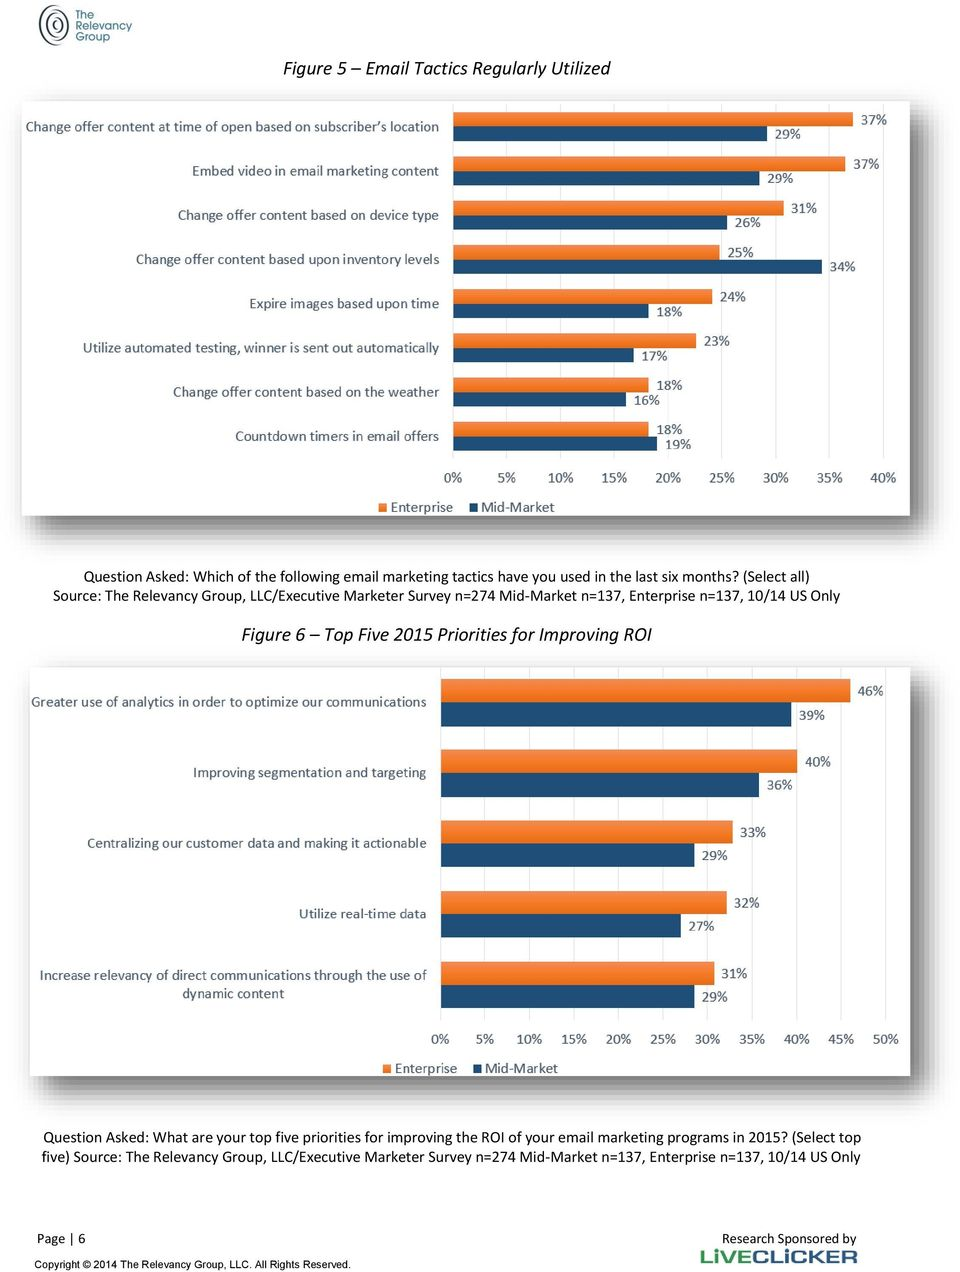 Five 2015 Priorities for Improving ROI Question Asked: What are your top five priorities for improving the ROI of your email marketing programs